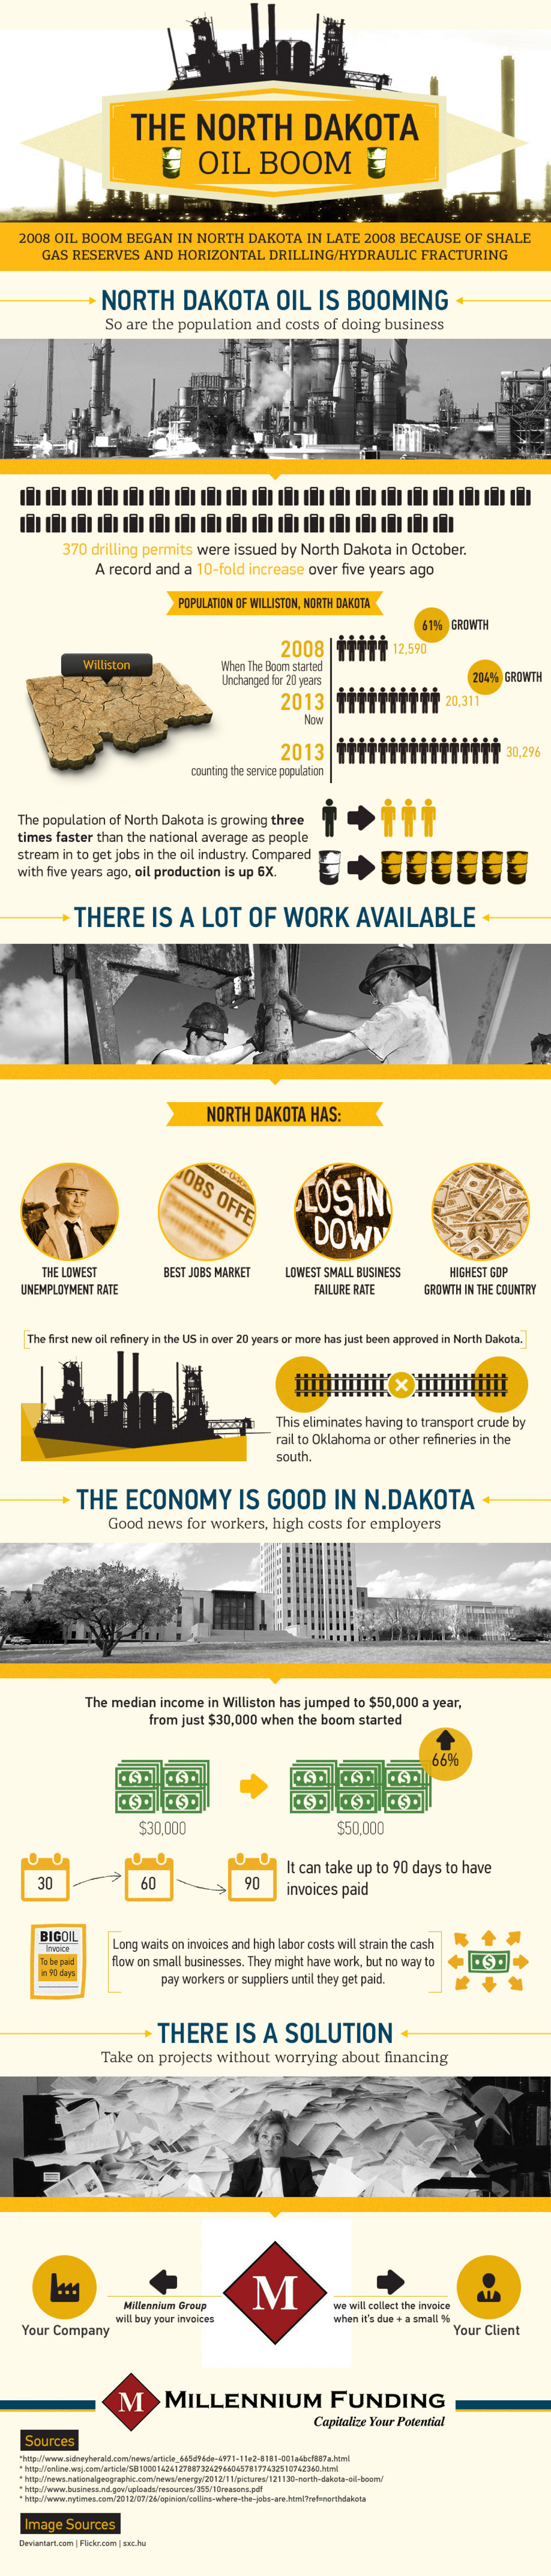 North Daota Oil Boom Infographic